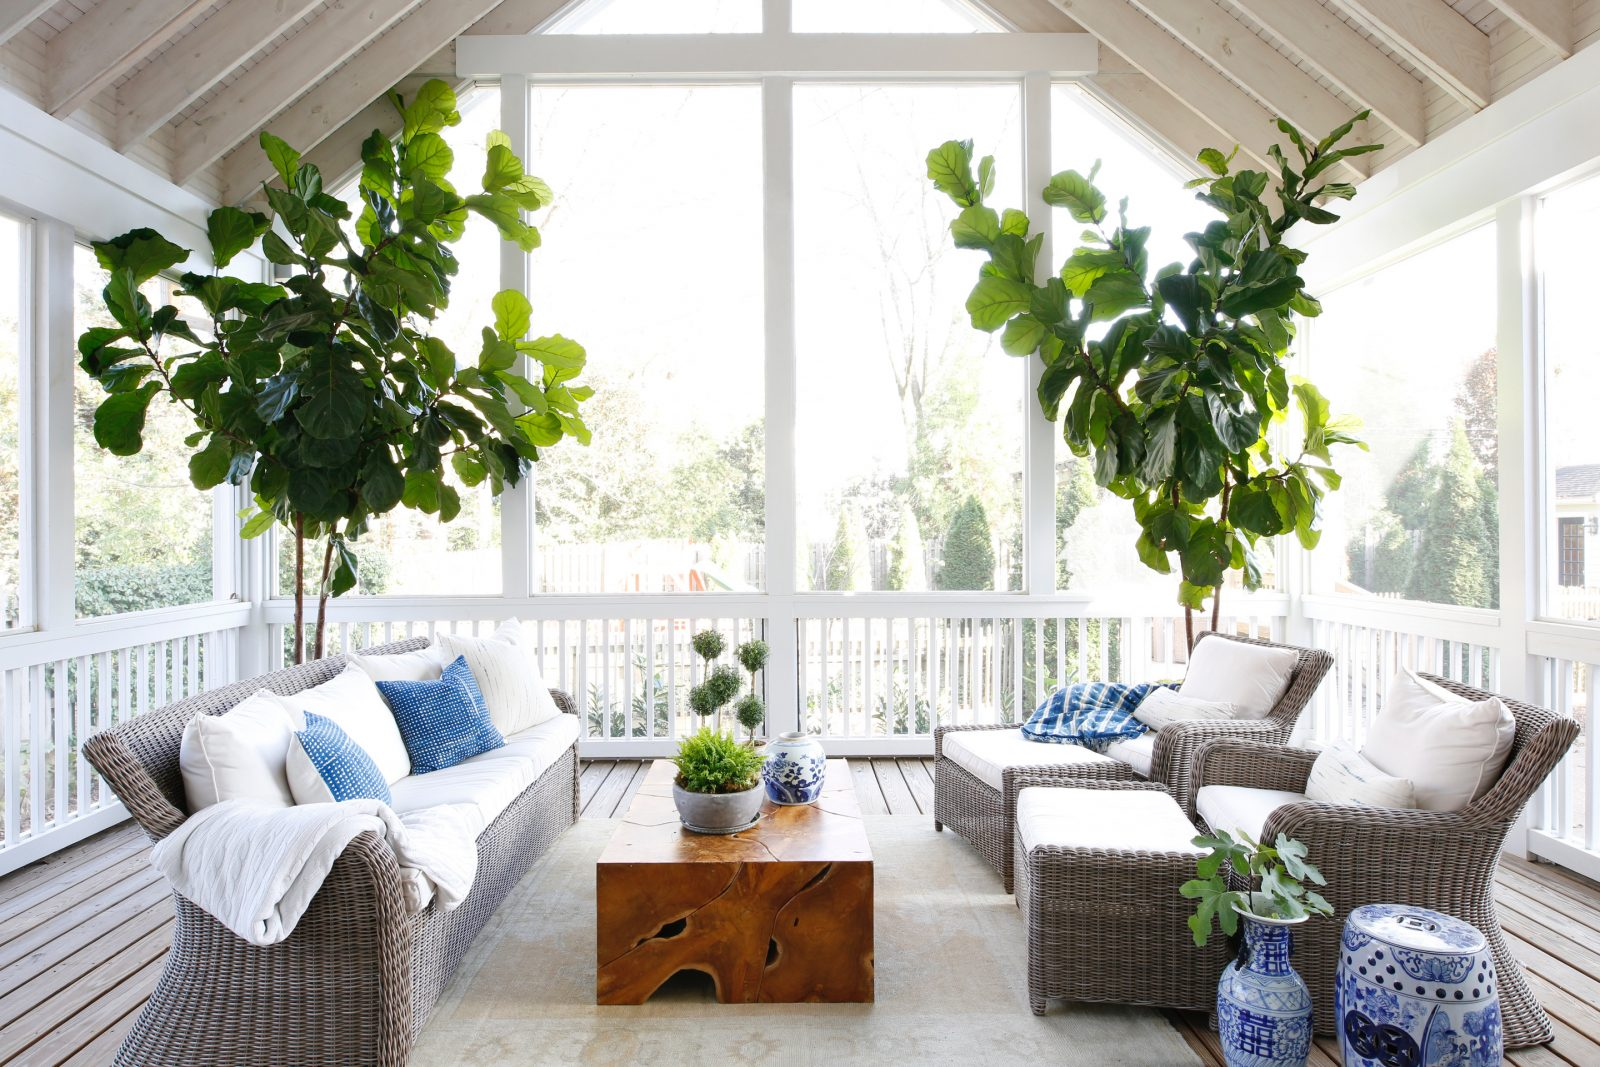 blue and white themed outdoor decore to inspire your summer outdoor living space